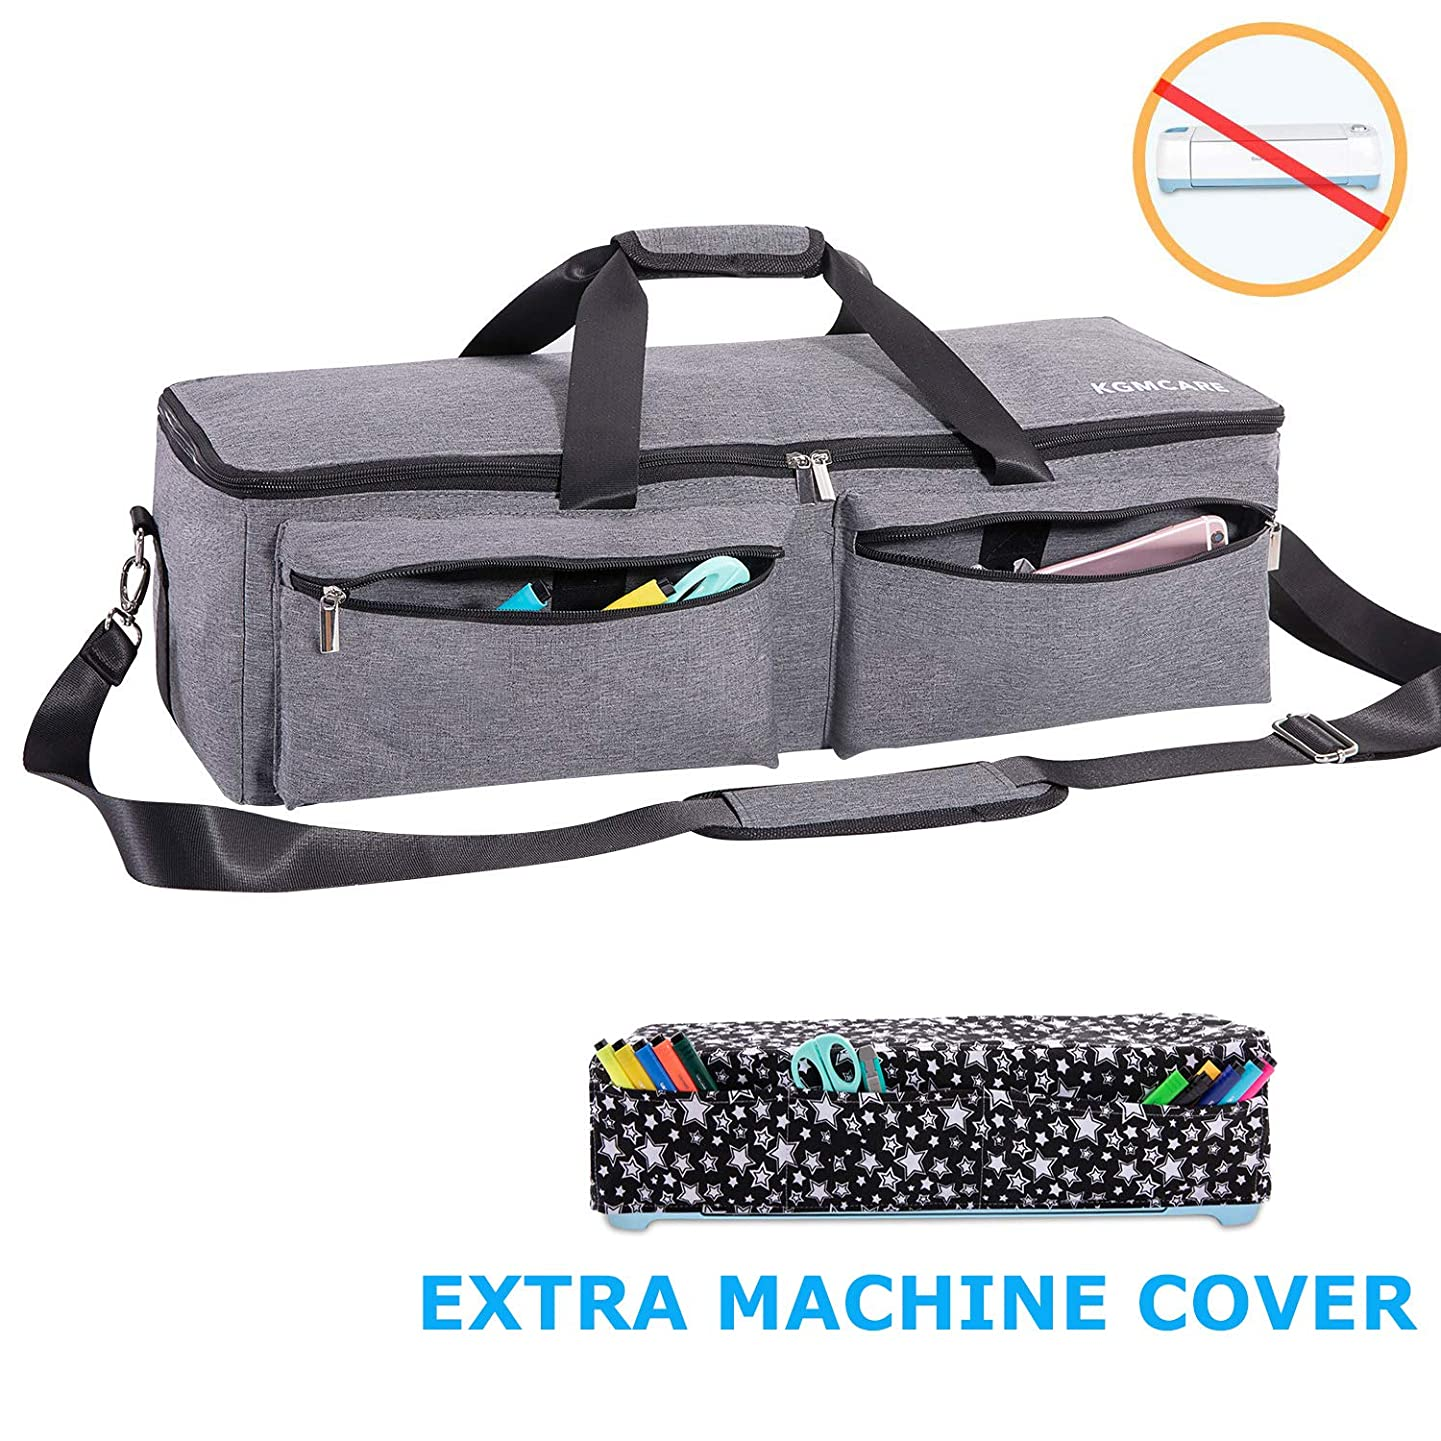 KGMcare Carrying Bag Compatible with Cricut Explore Air and Maker, Waterproof Tote Bag Compatible with Cricut Explore Air and Supplies- (Gray)